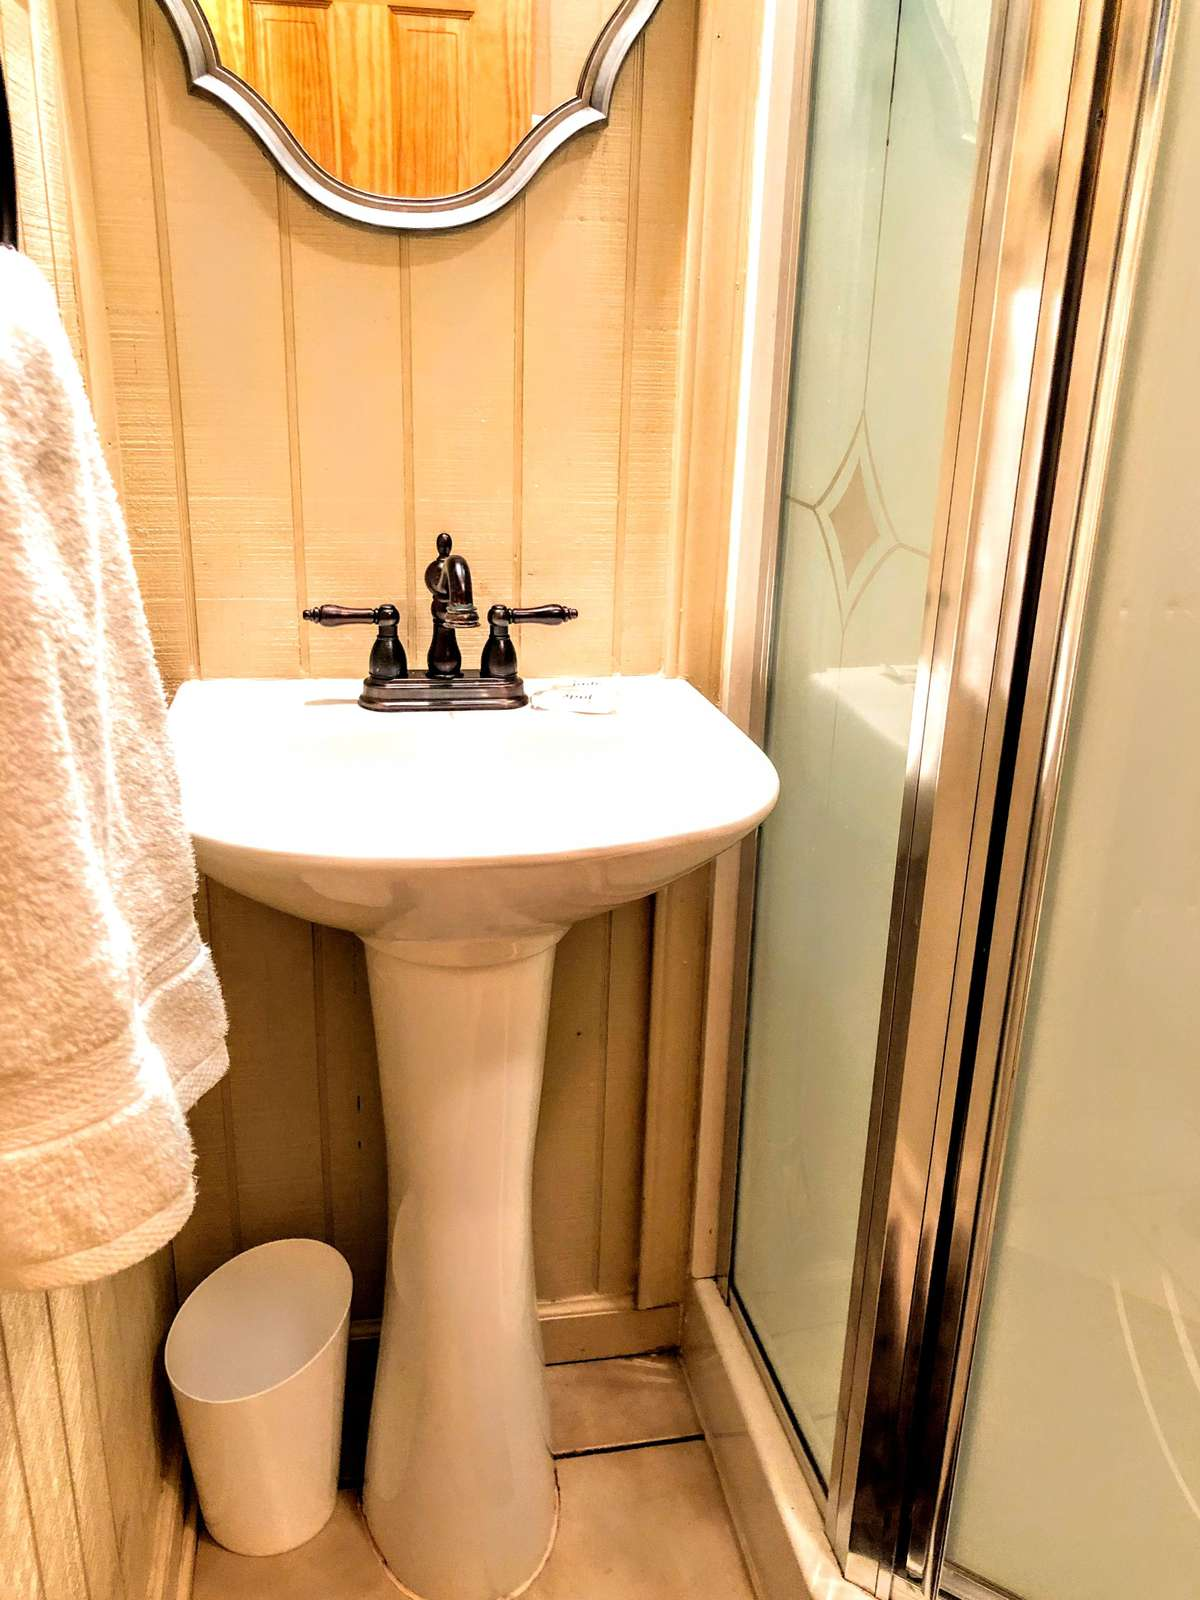 Pedestal sink and small shelves in 2nd bathroom